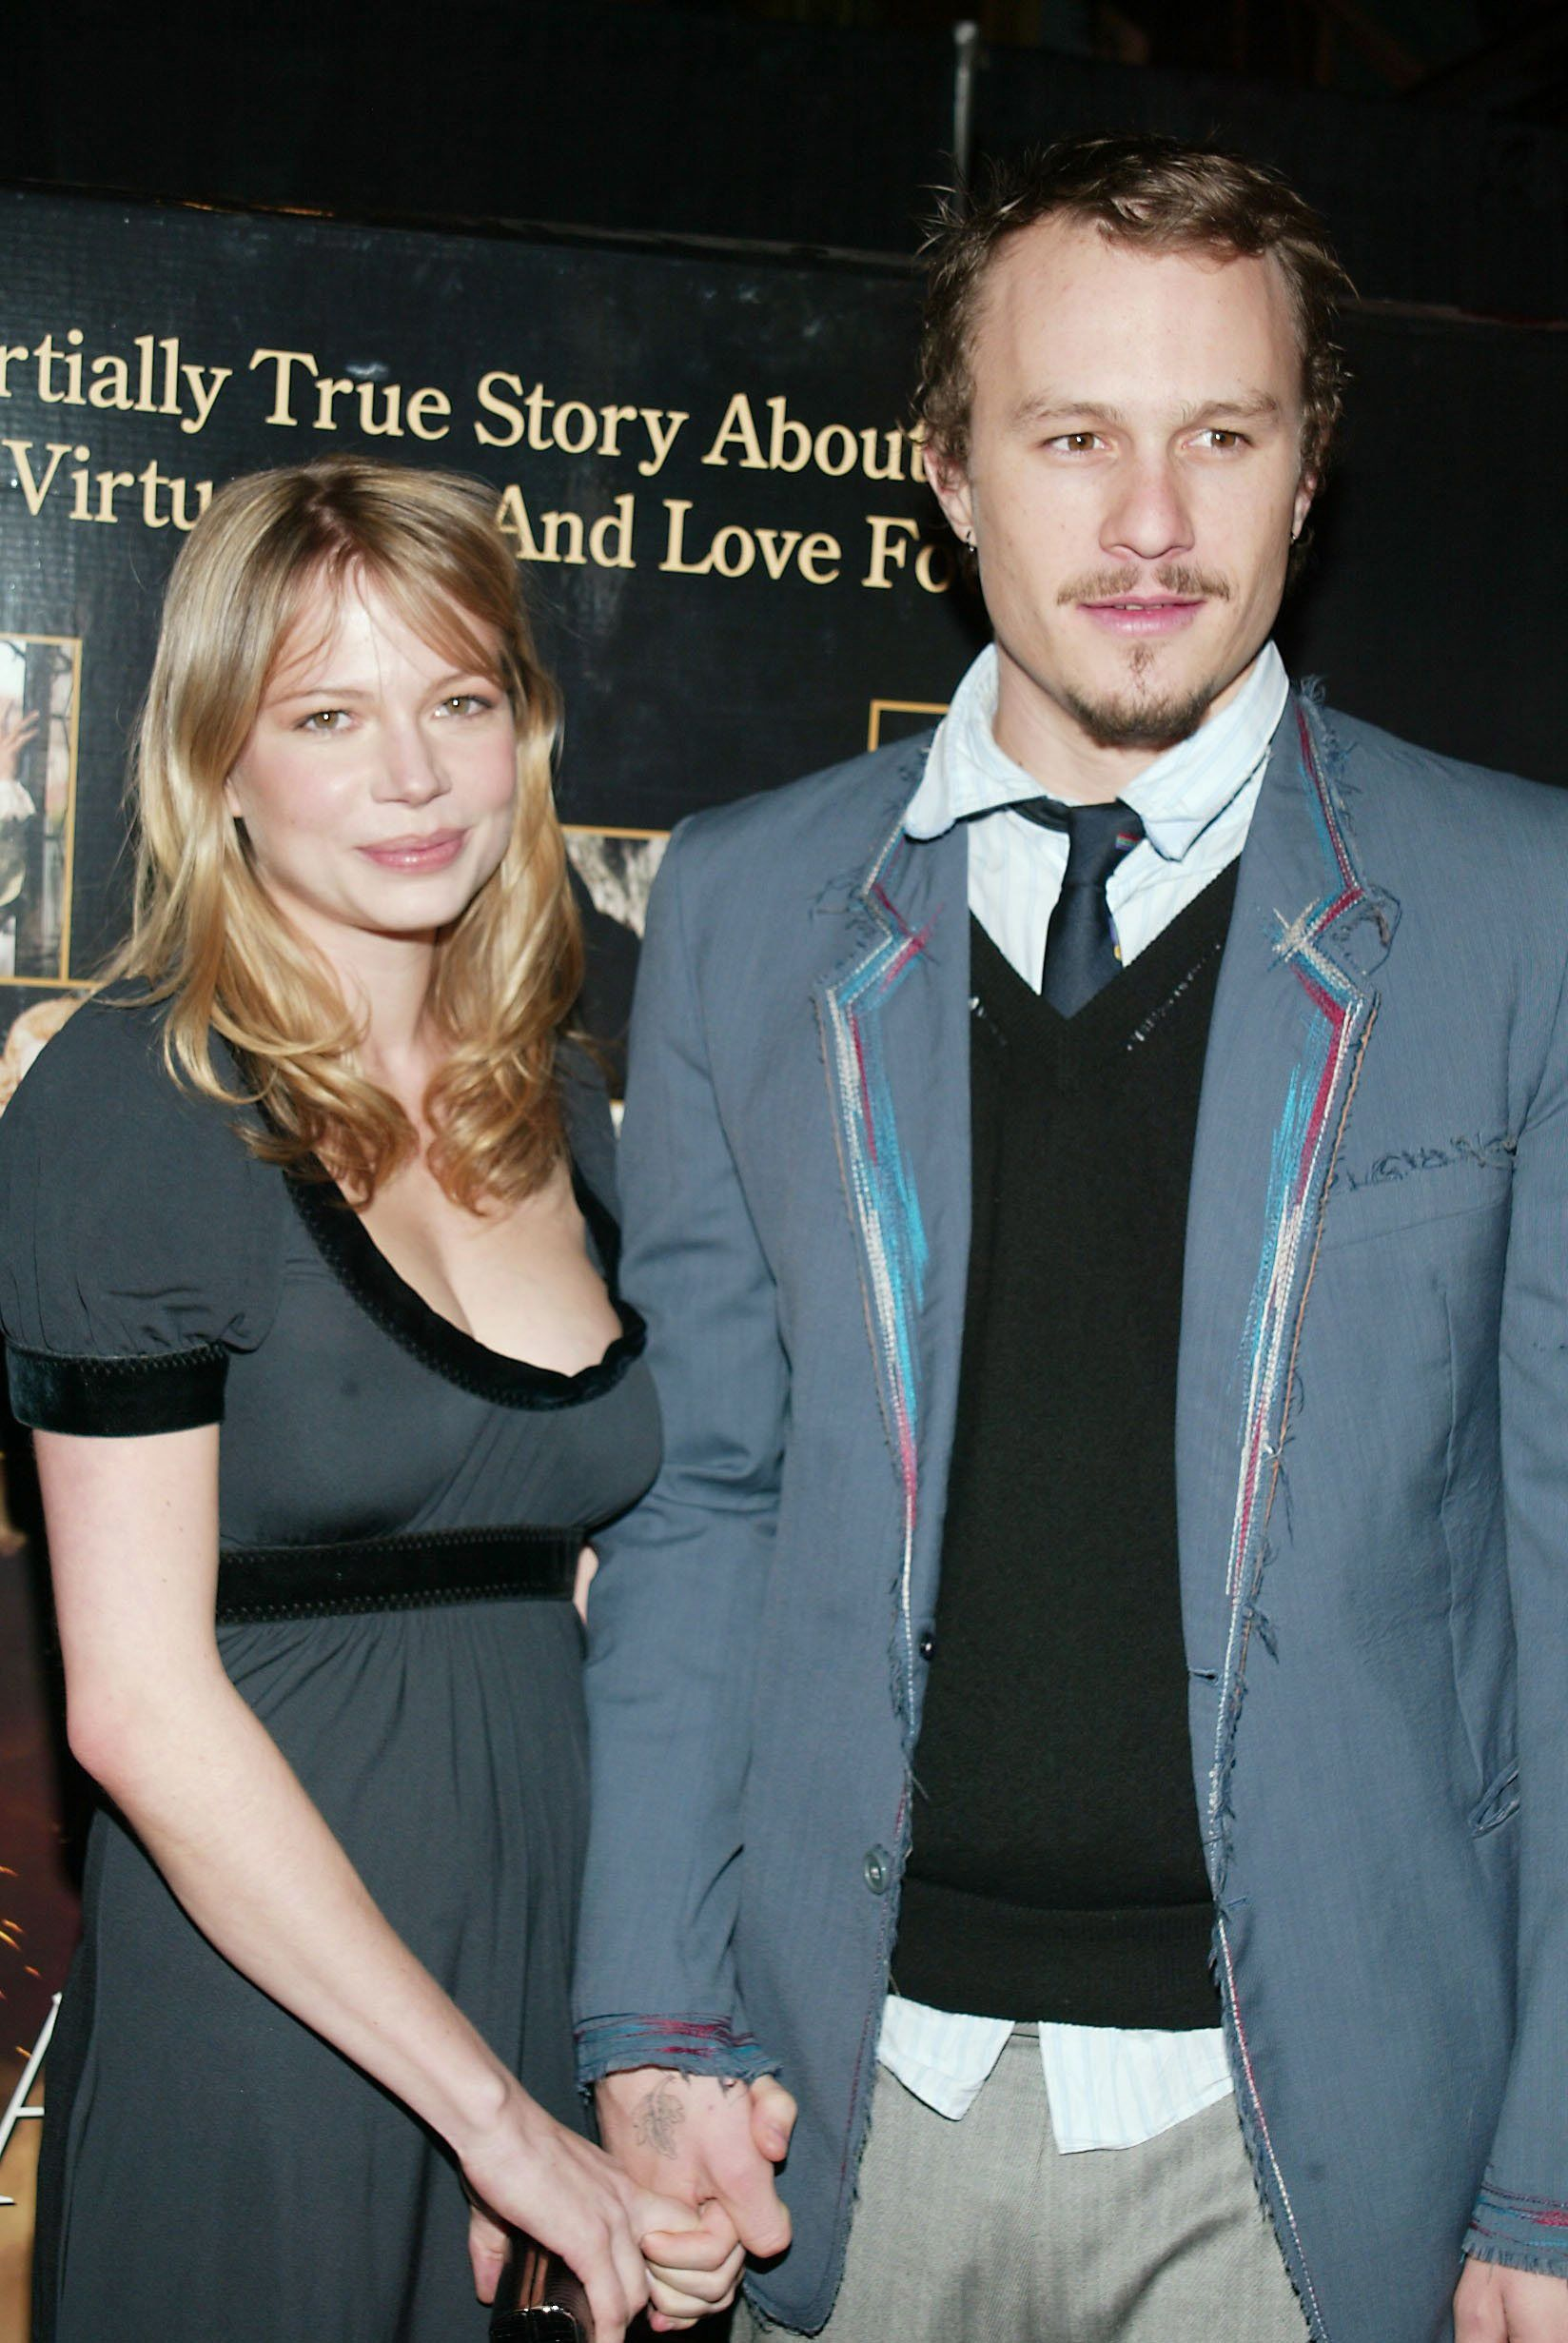 """Michelle Williams and Heath Ledger at the """"Casanova"""" premiere in New York City in 2005. They amicably split in 2007."""